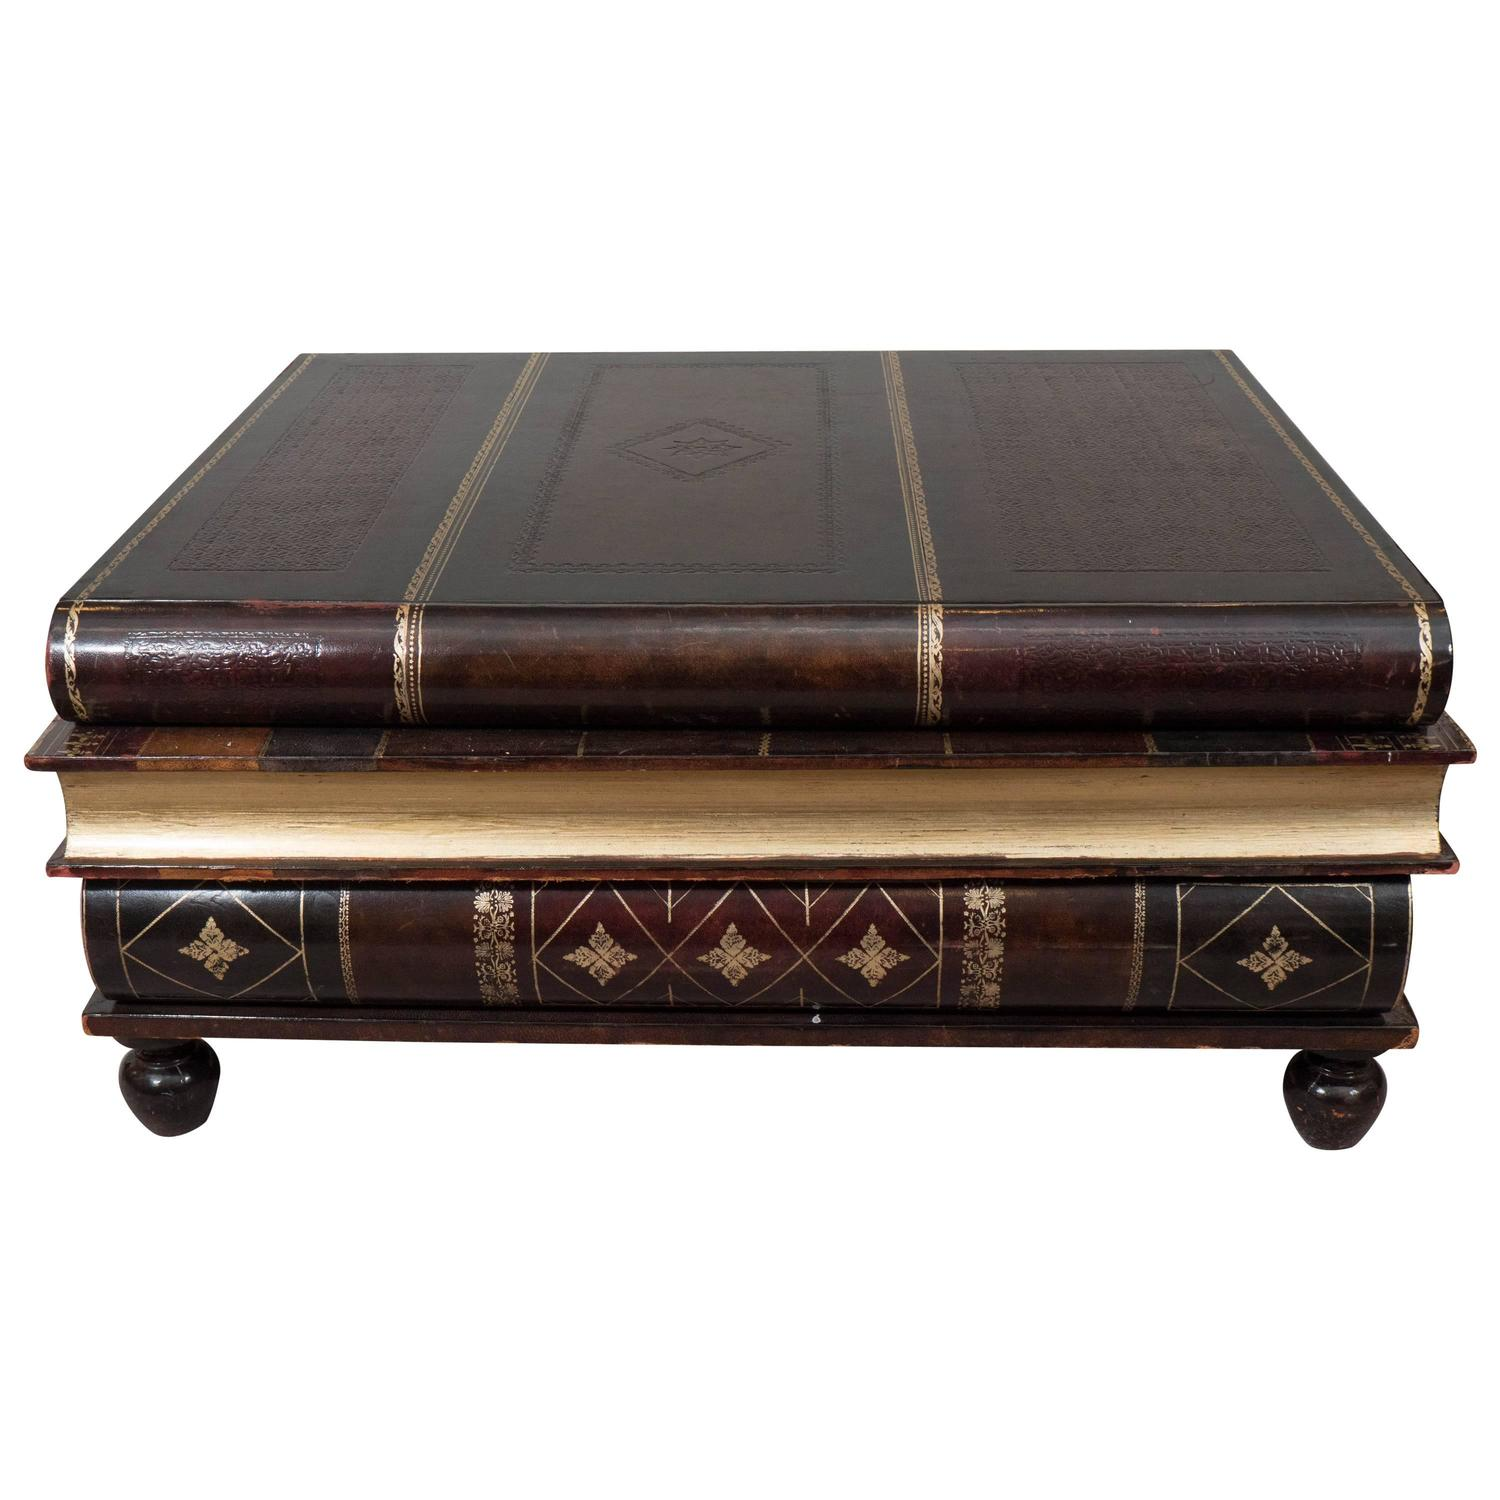 maitland smith stacked books coffee table at 1stdibs. Black Bedroom Furniture Sets. Home Design Ideas